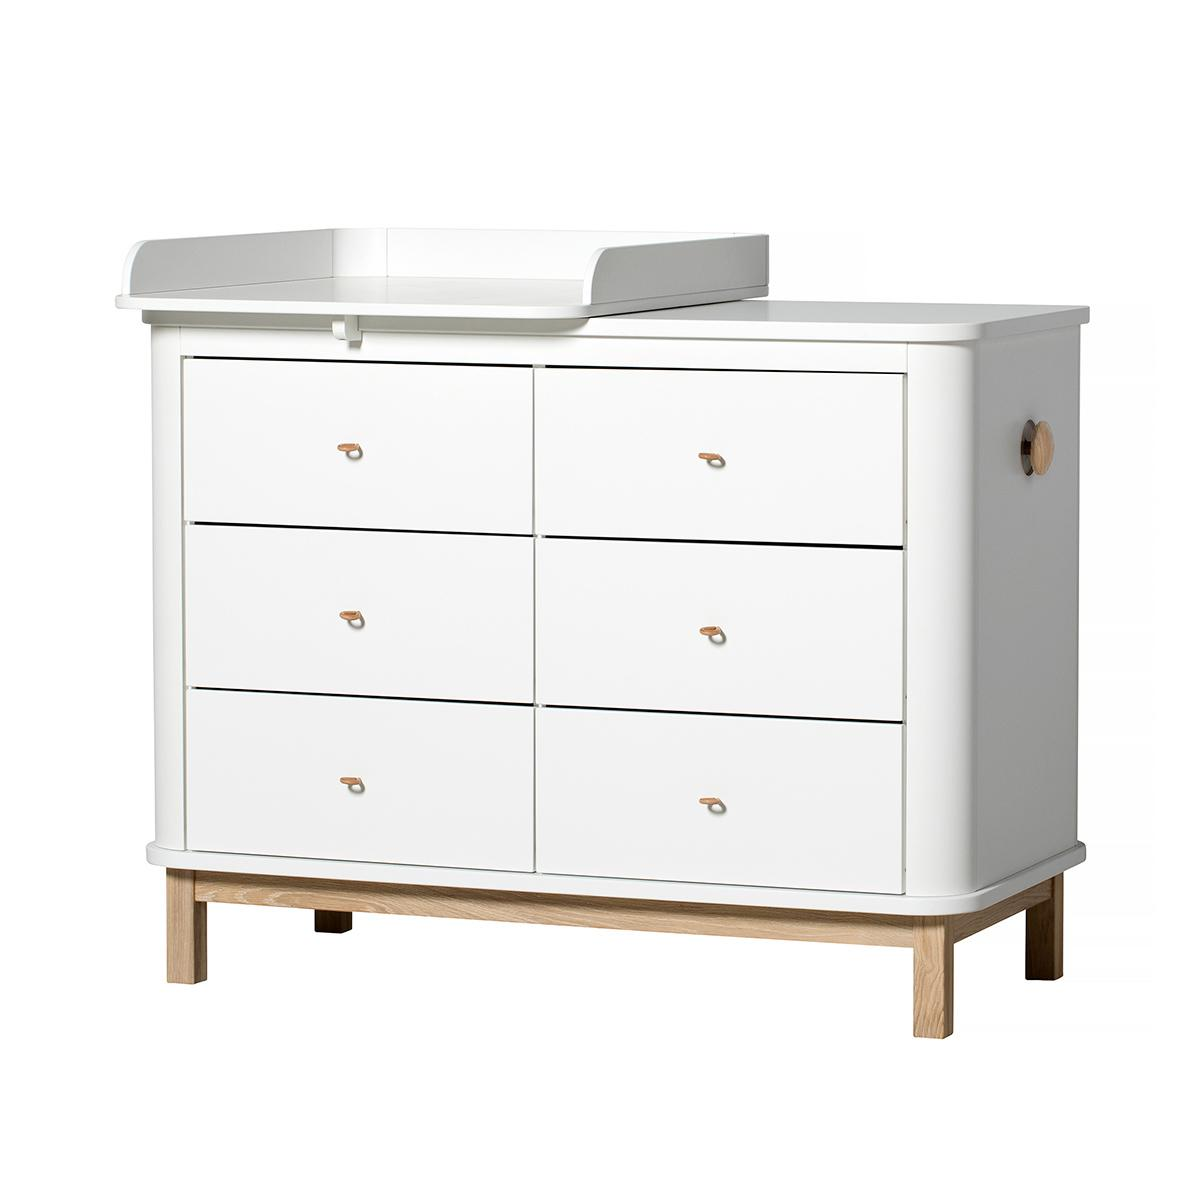 Plan à langer small WOOD Oliver Furniture blanc